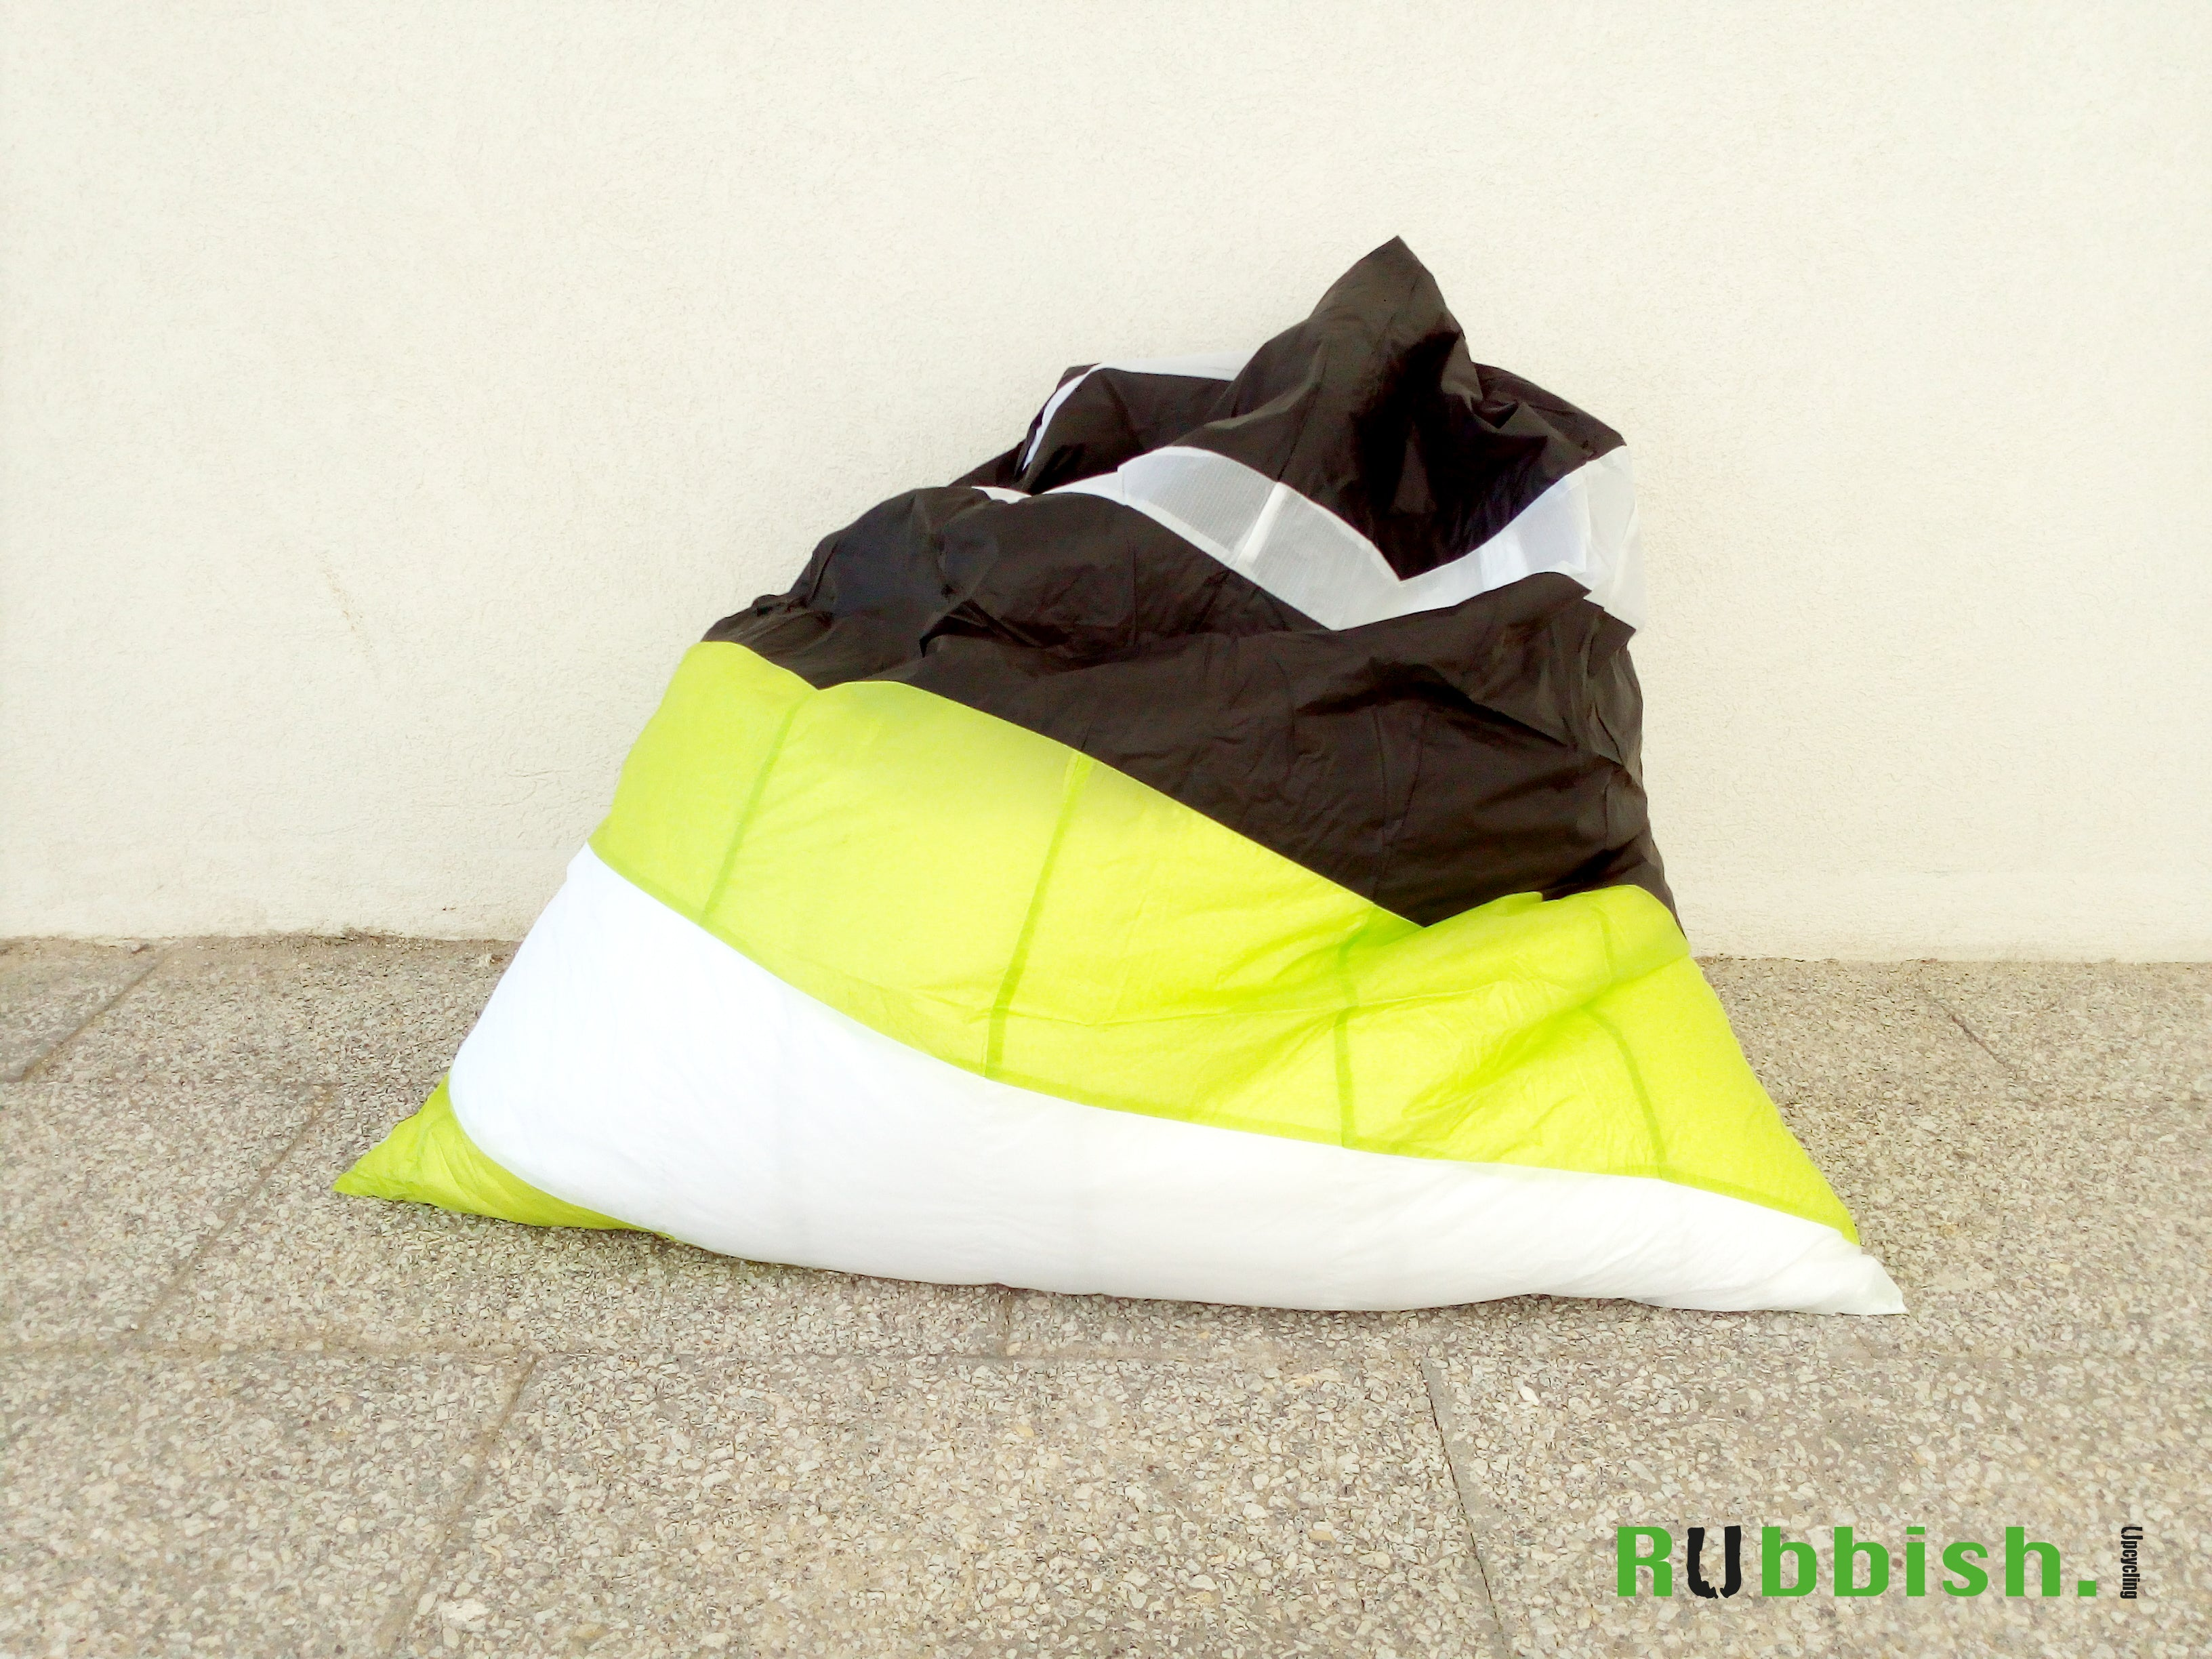 Puff bean bag 17-27